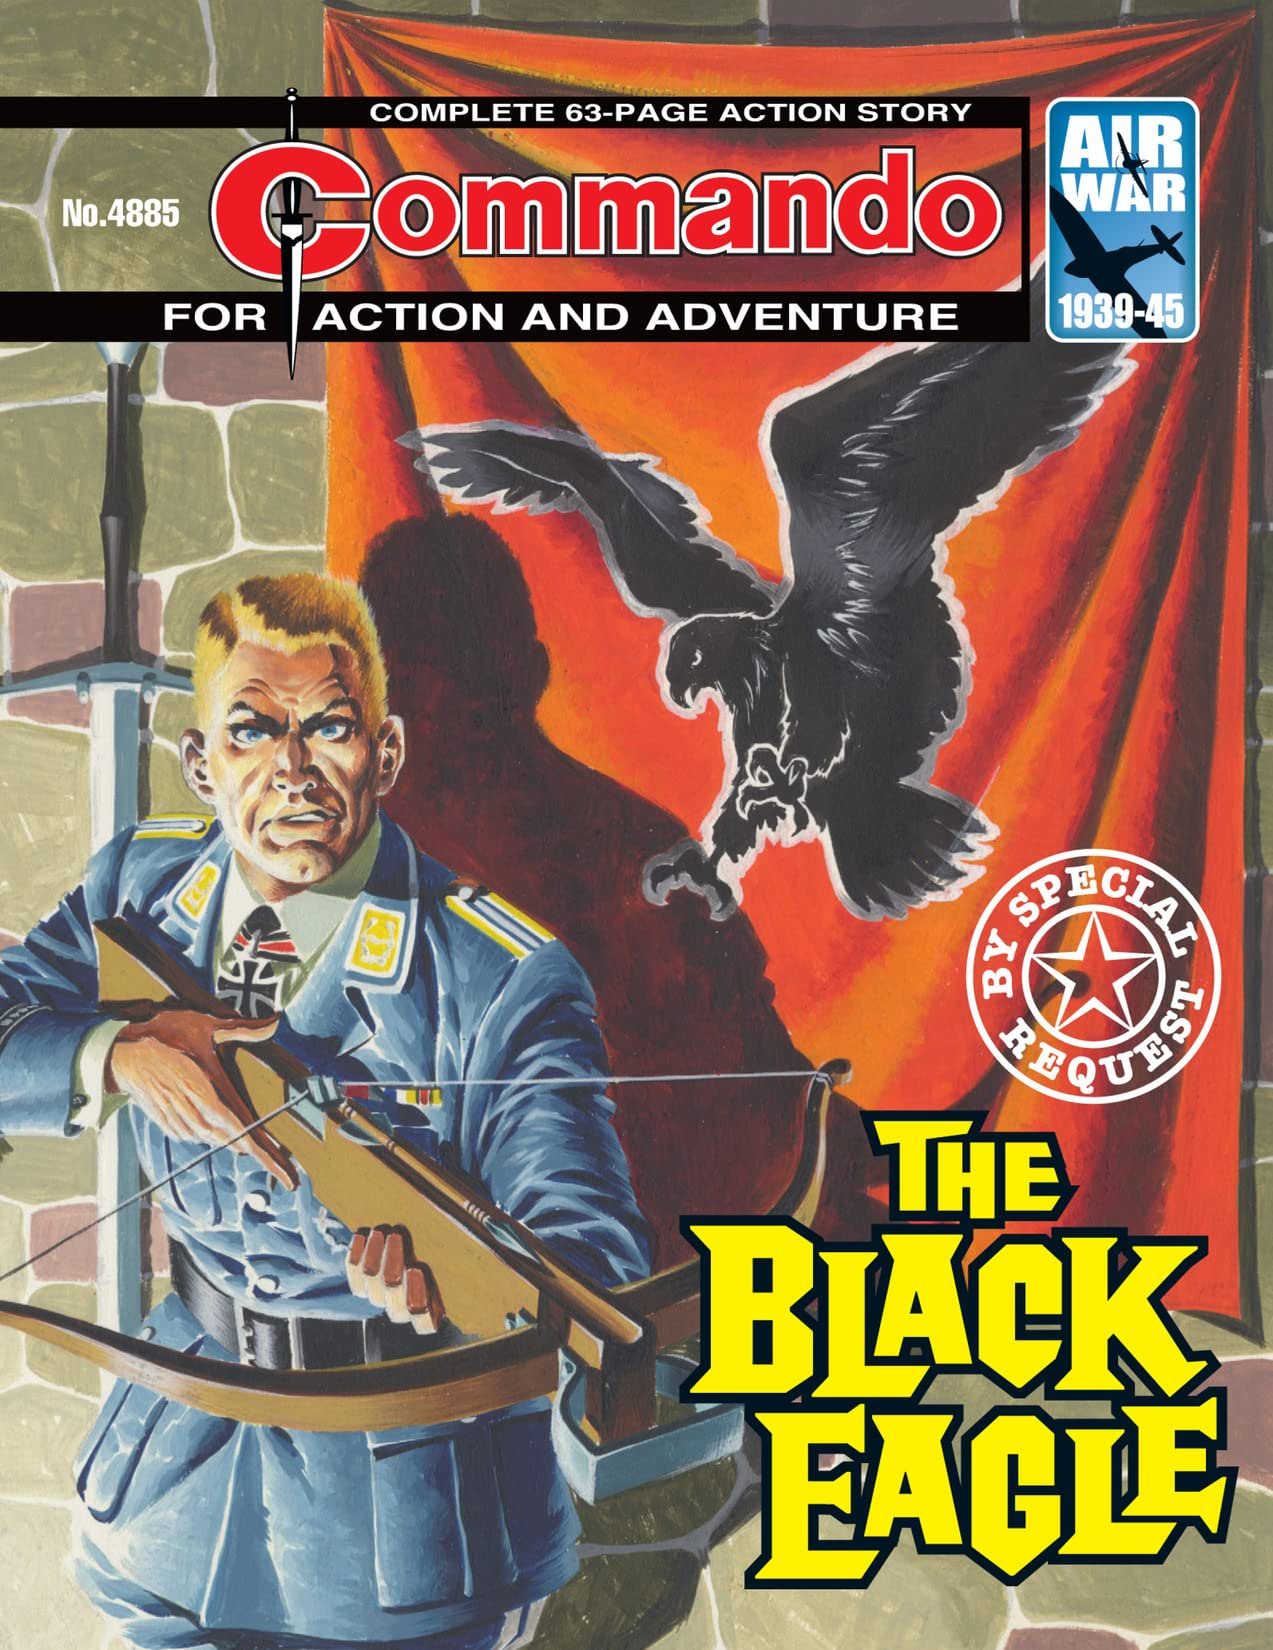 Commando #4885: The Black Eagle